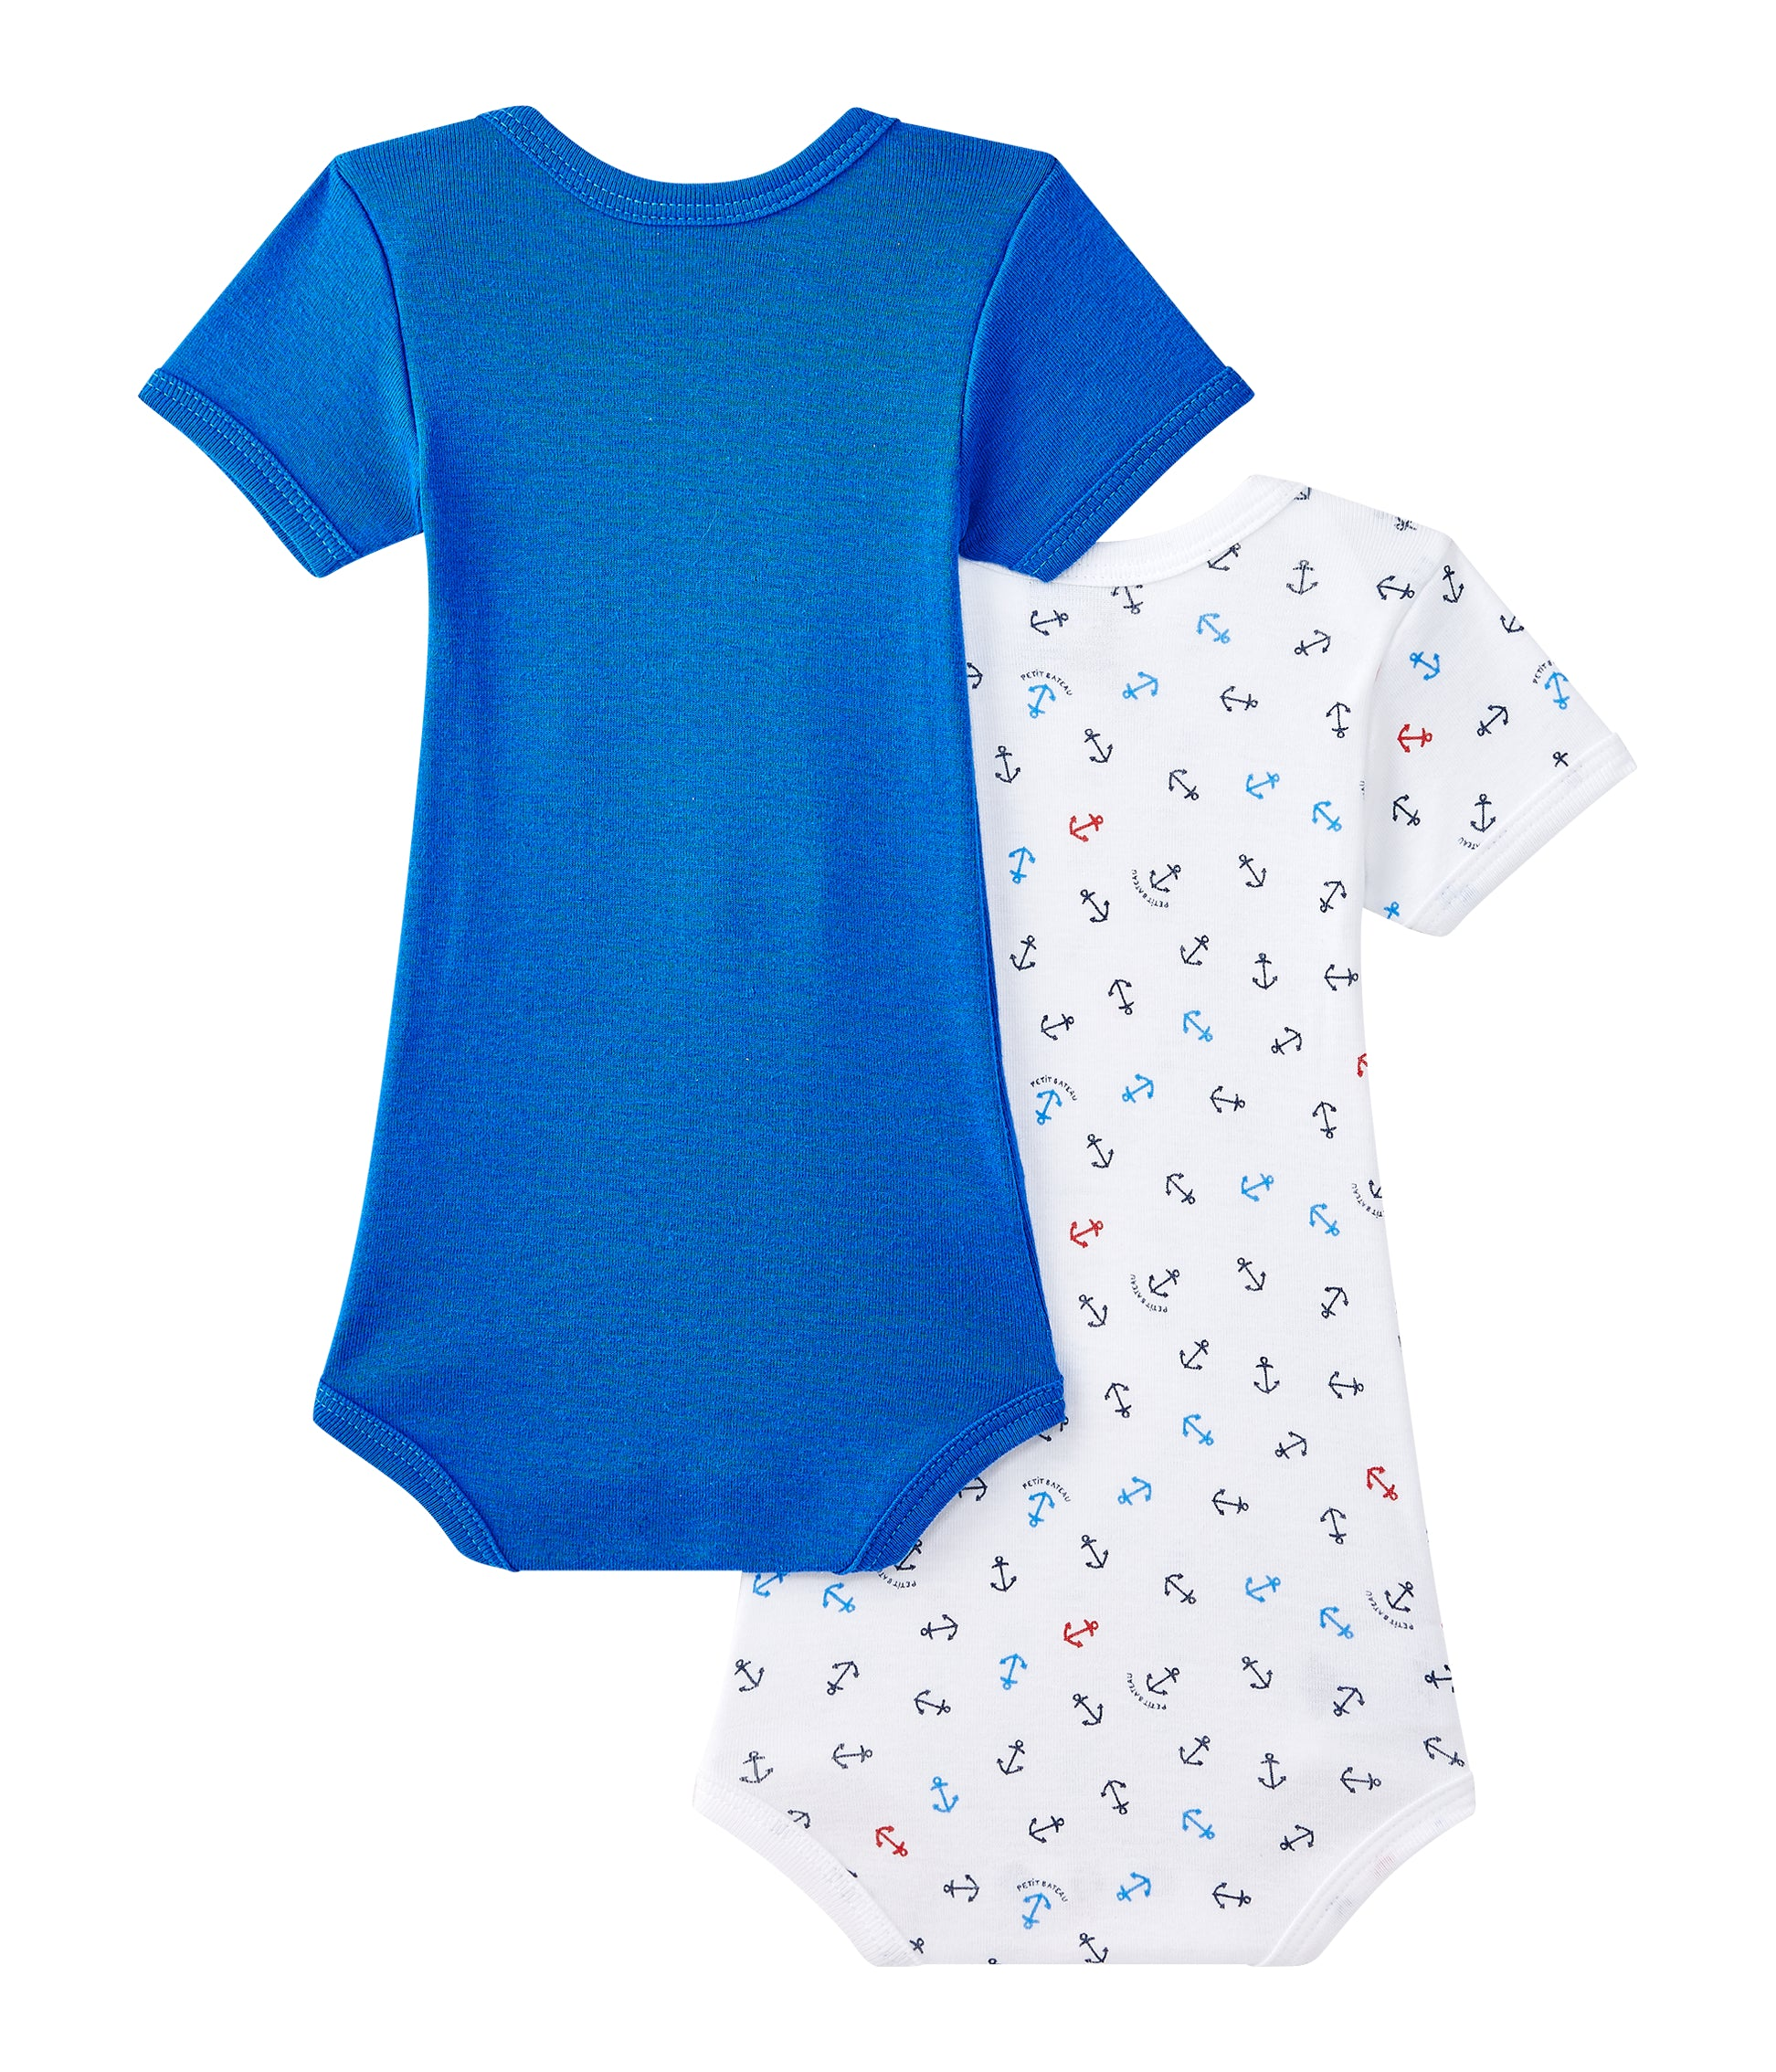 Petit Bateau - Bodies, Baby Boy SS, 2-pak - Blue / Anchor